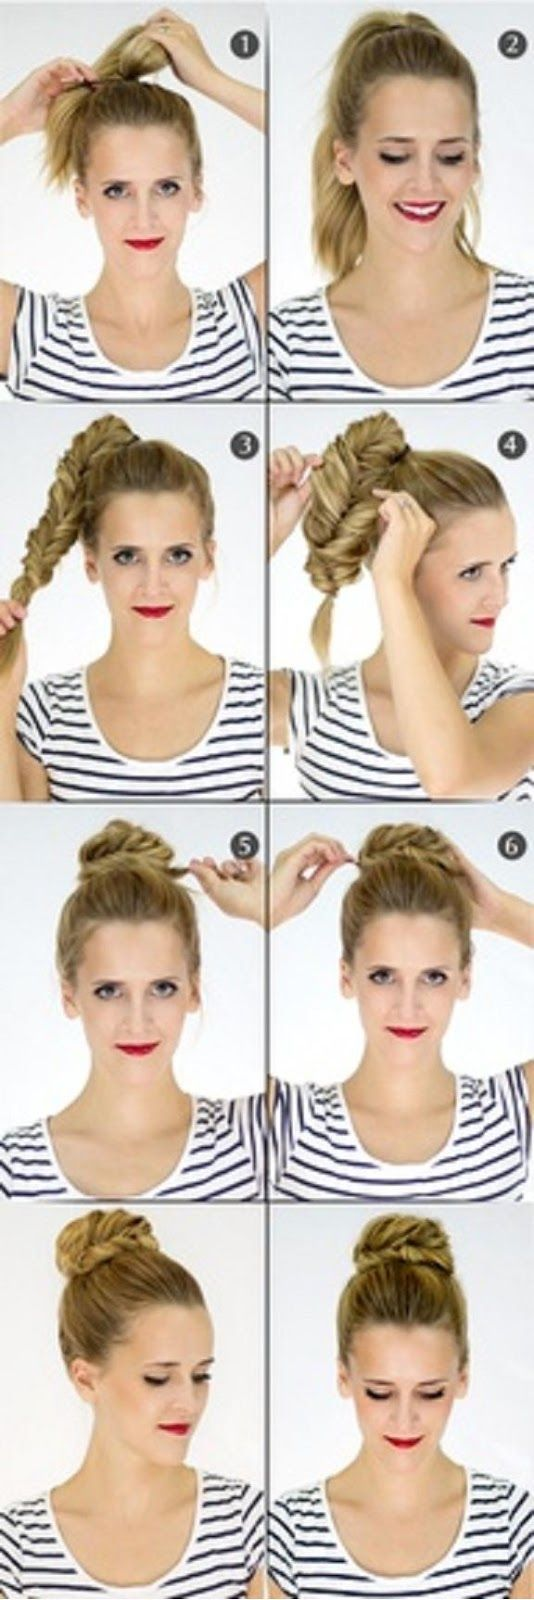 Make a Fishtail Bun For Your Self | DIY & Crafts Tutorials